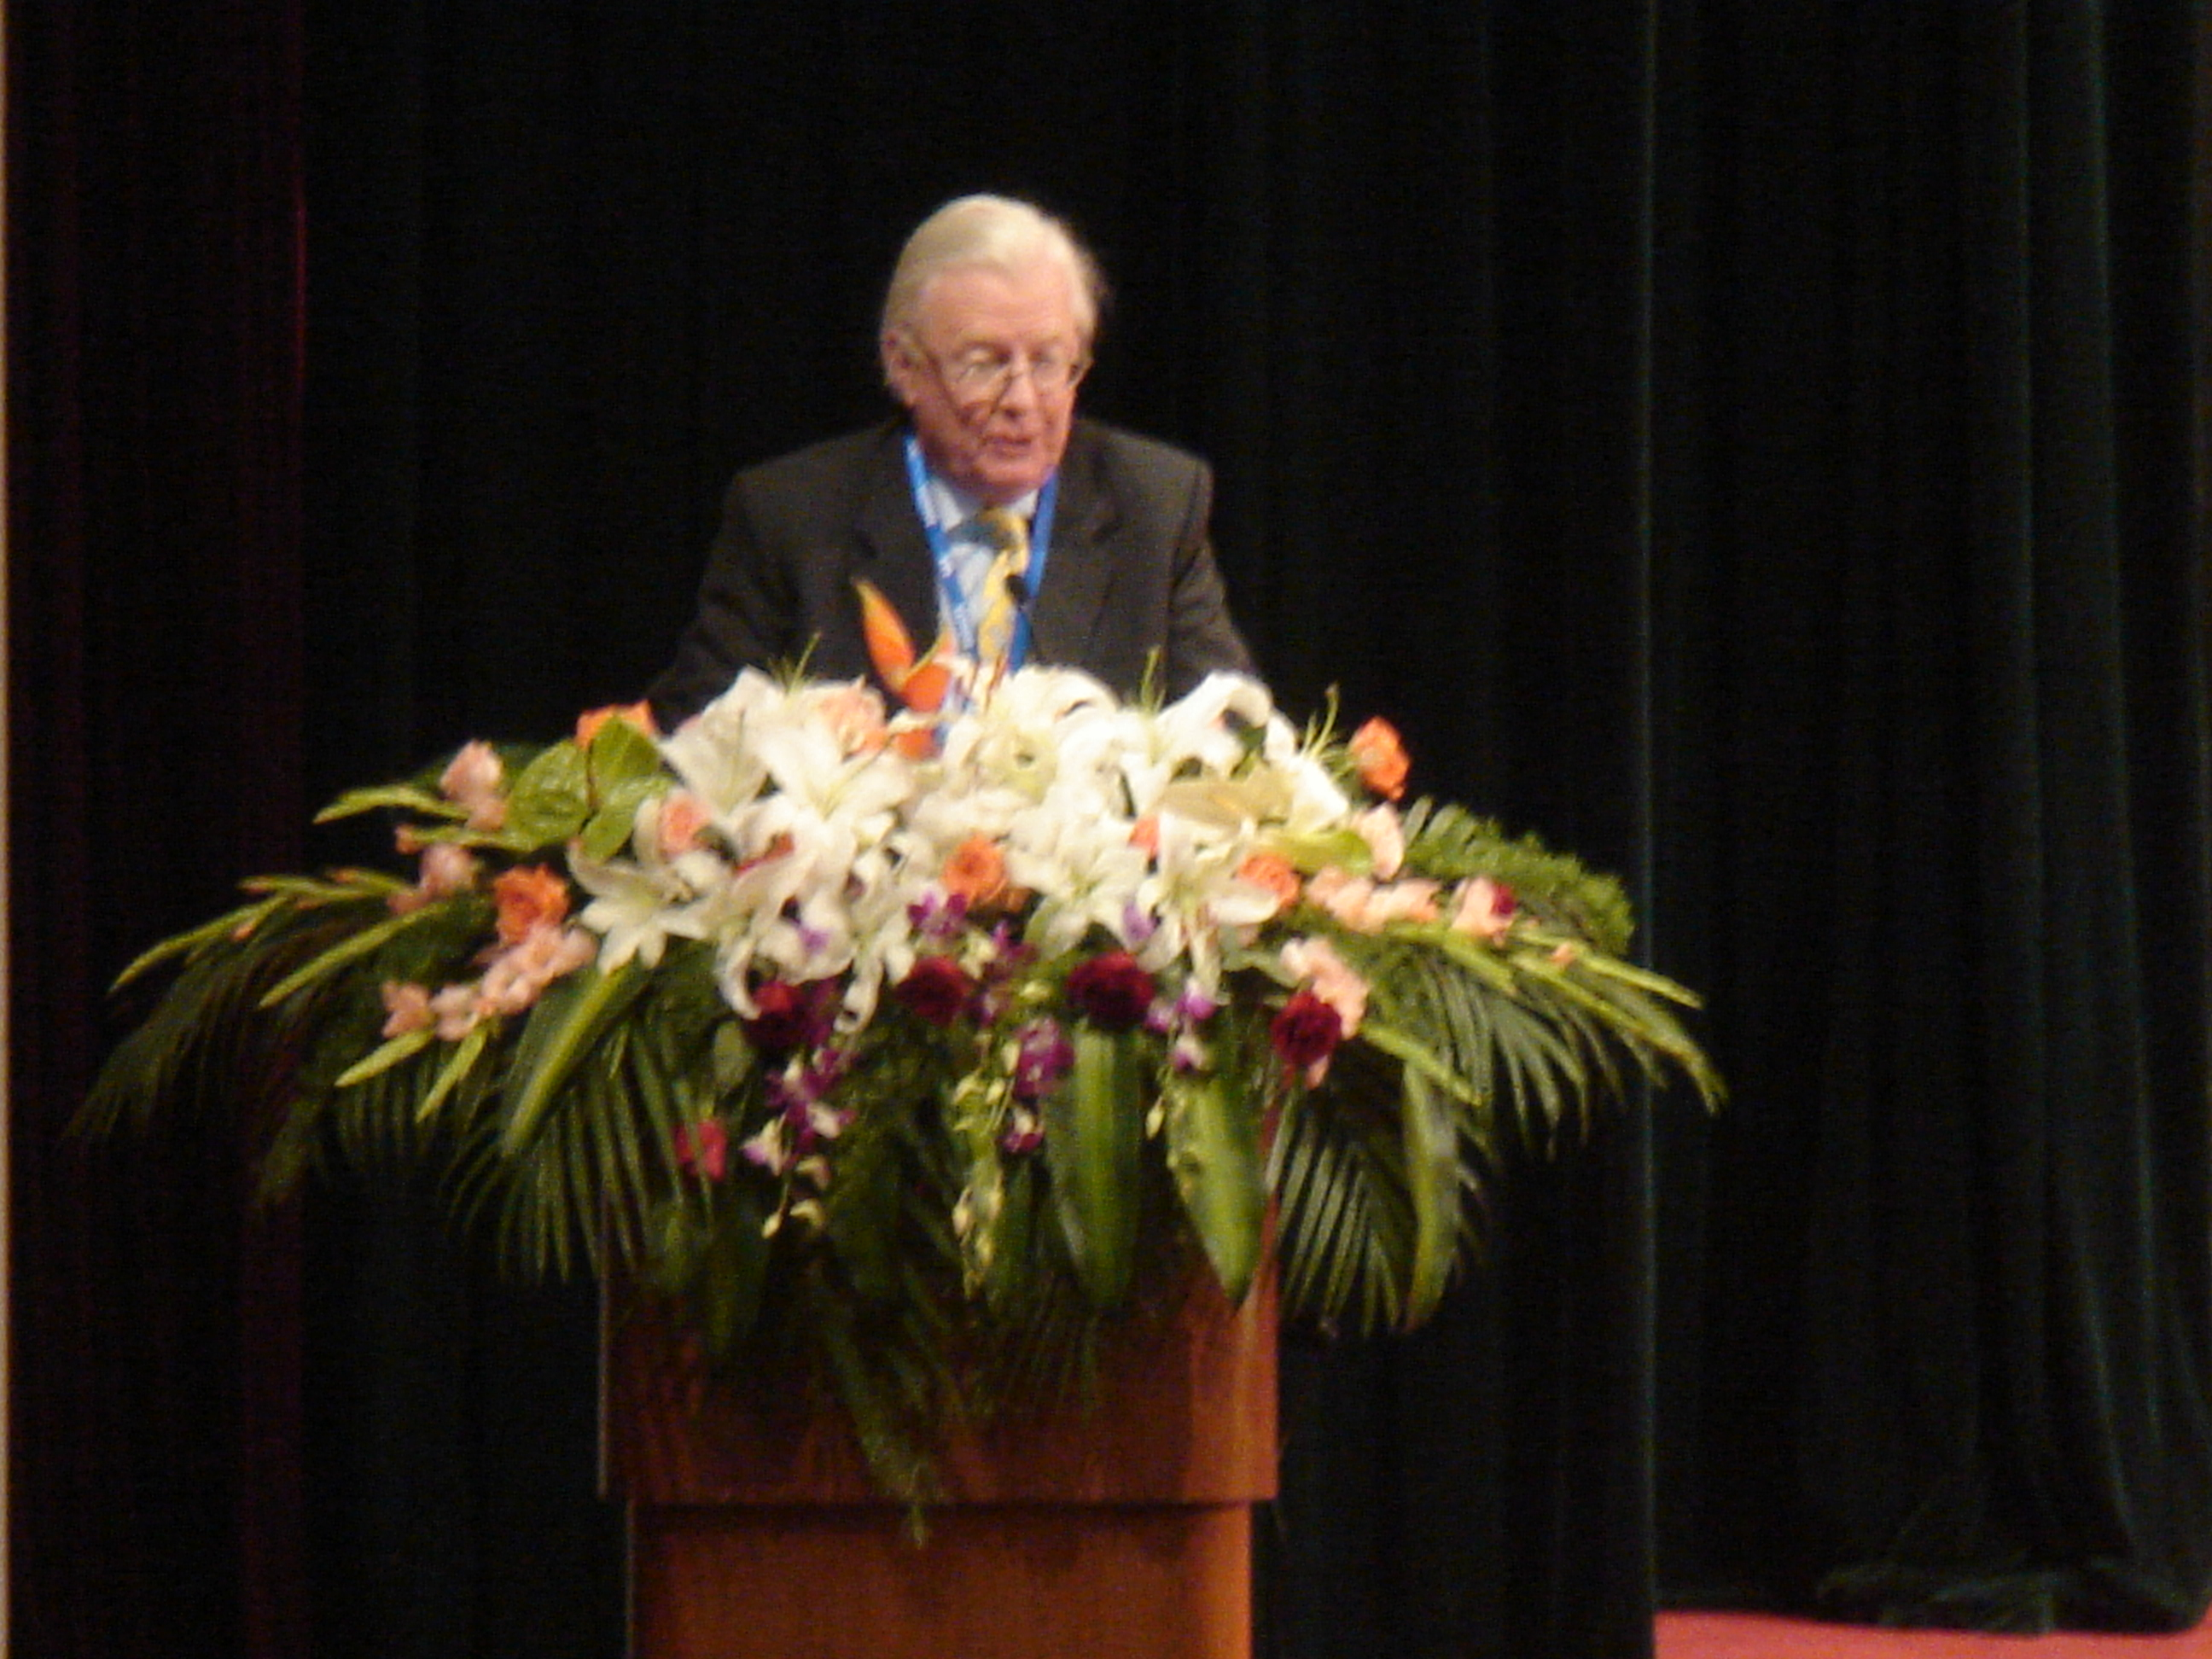 Keynote Speaker, James A. Mirrlees